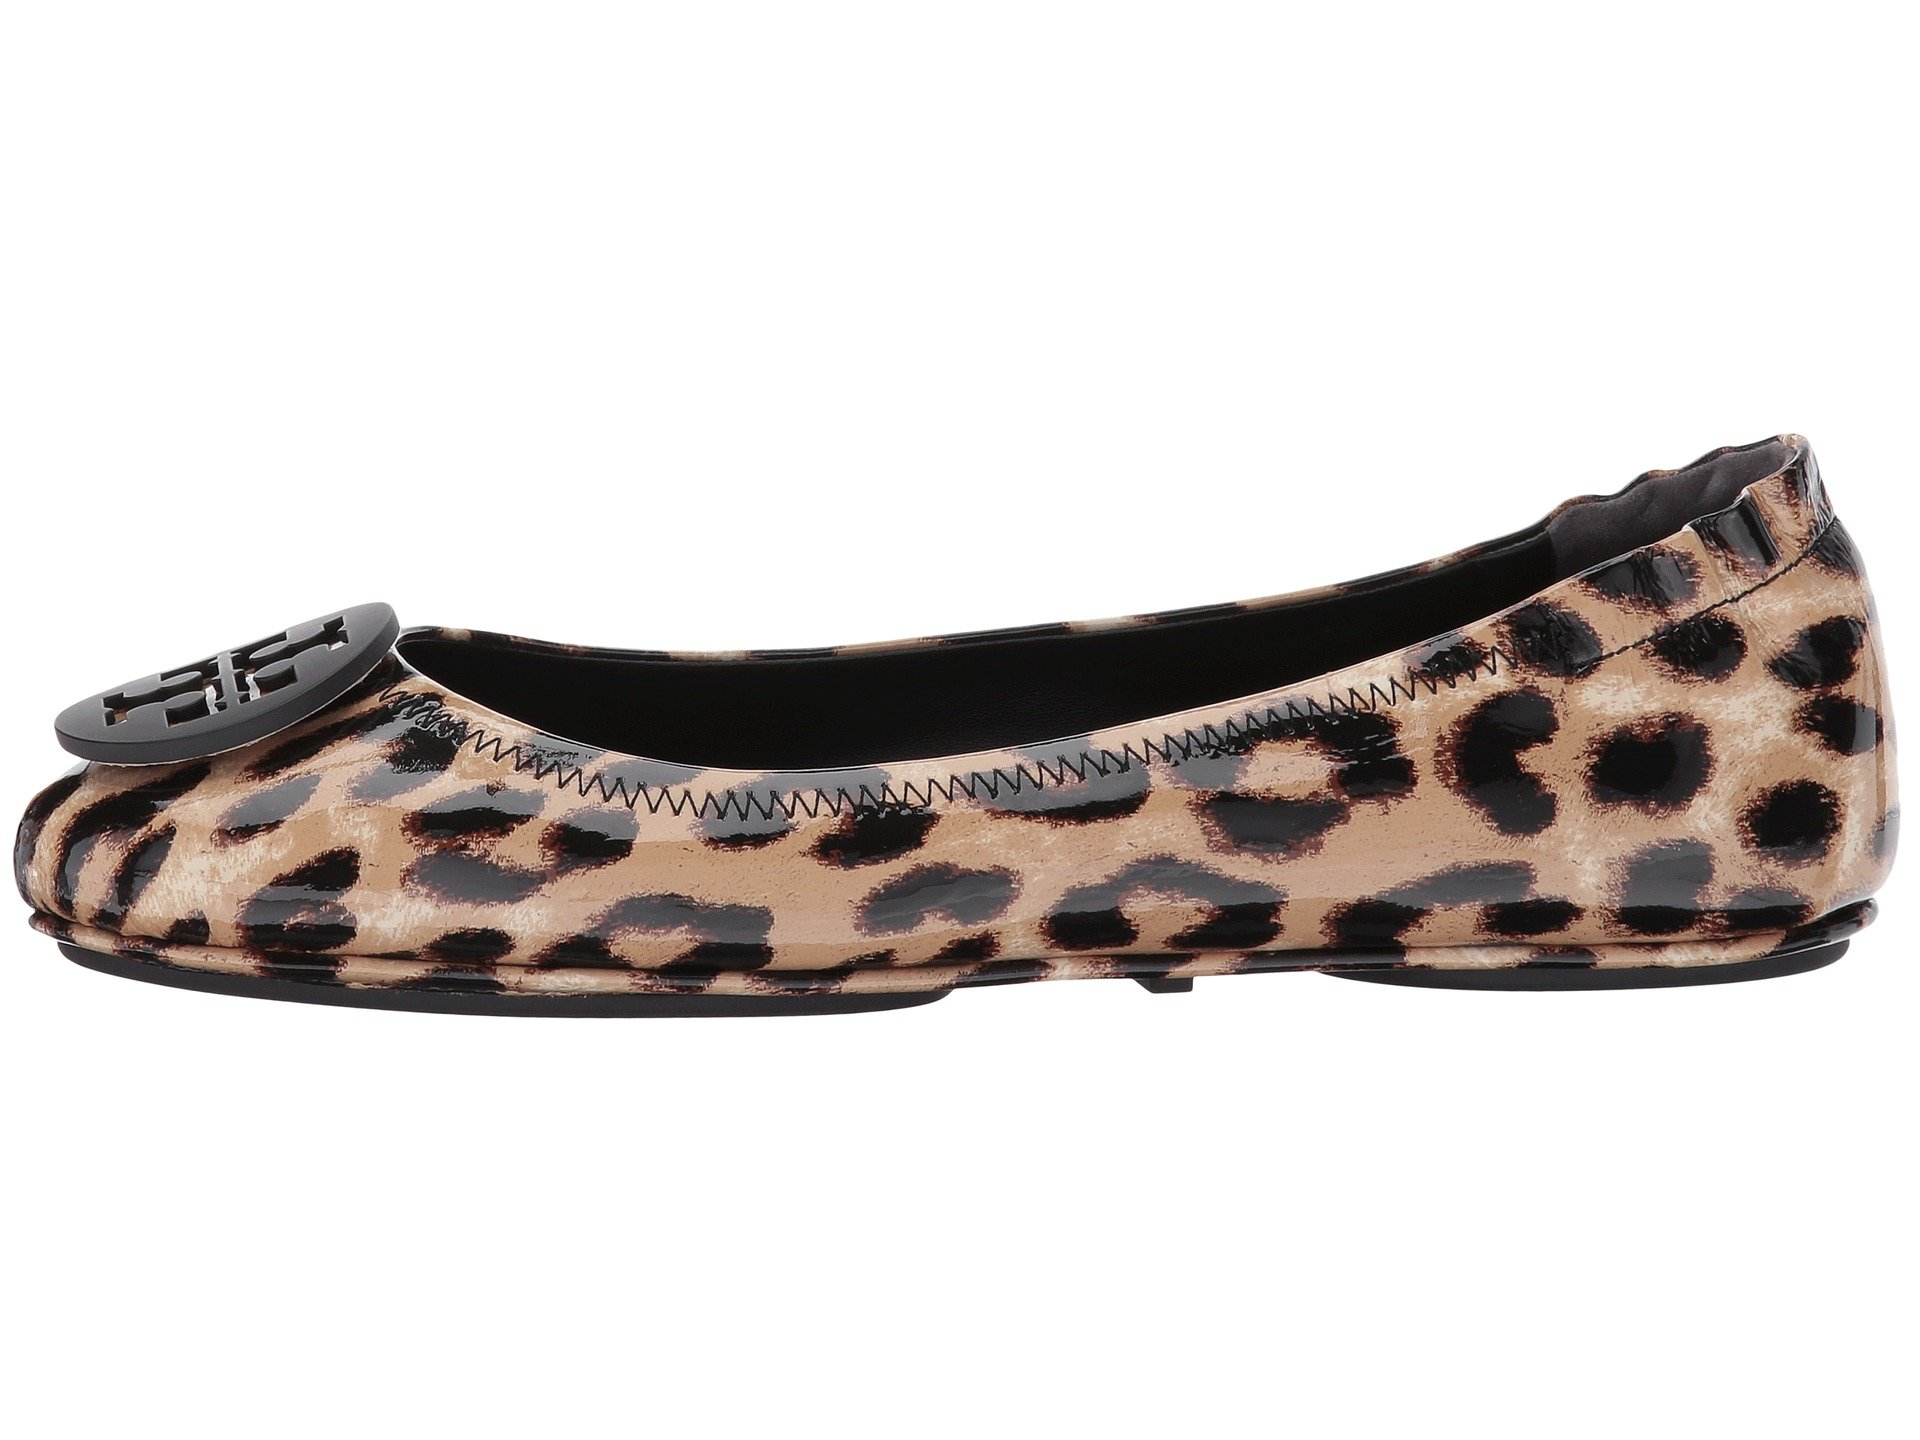 Tory Burch Minnie Travel Ballet Flat At Zappos Com